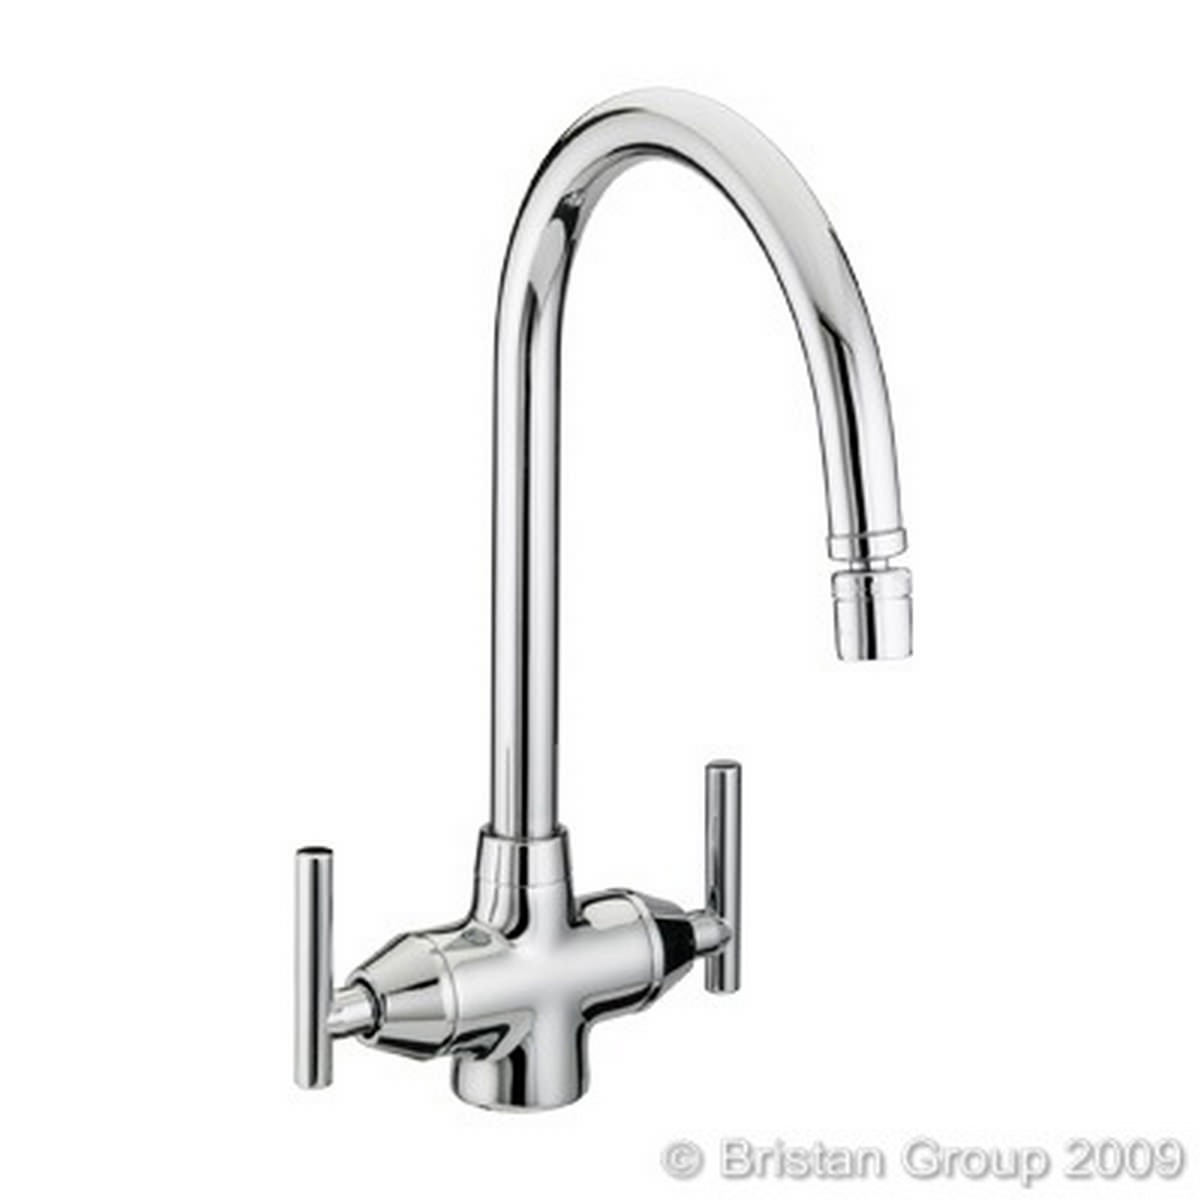 Bristan Revolve Kitchen Tap